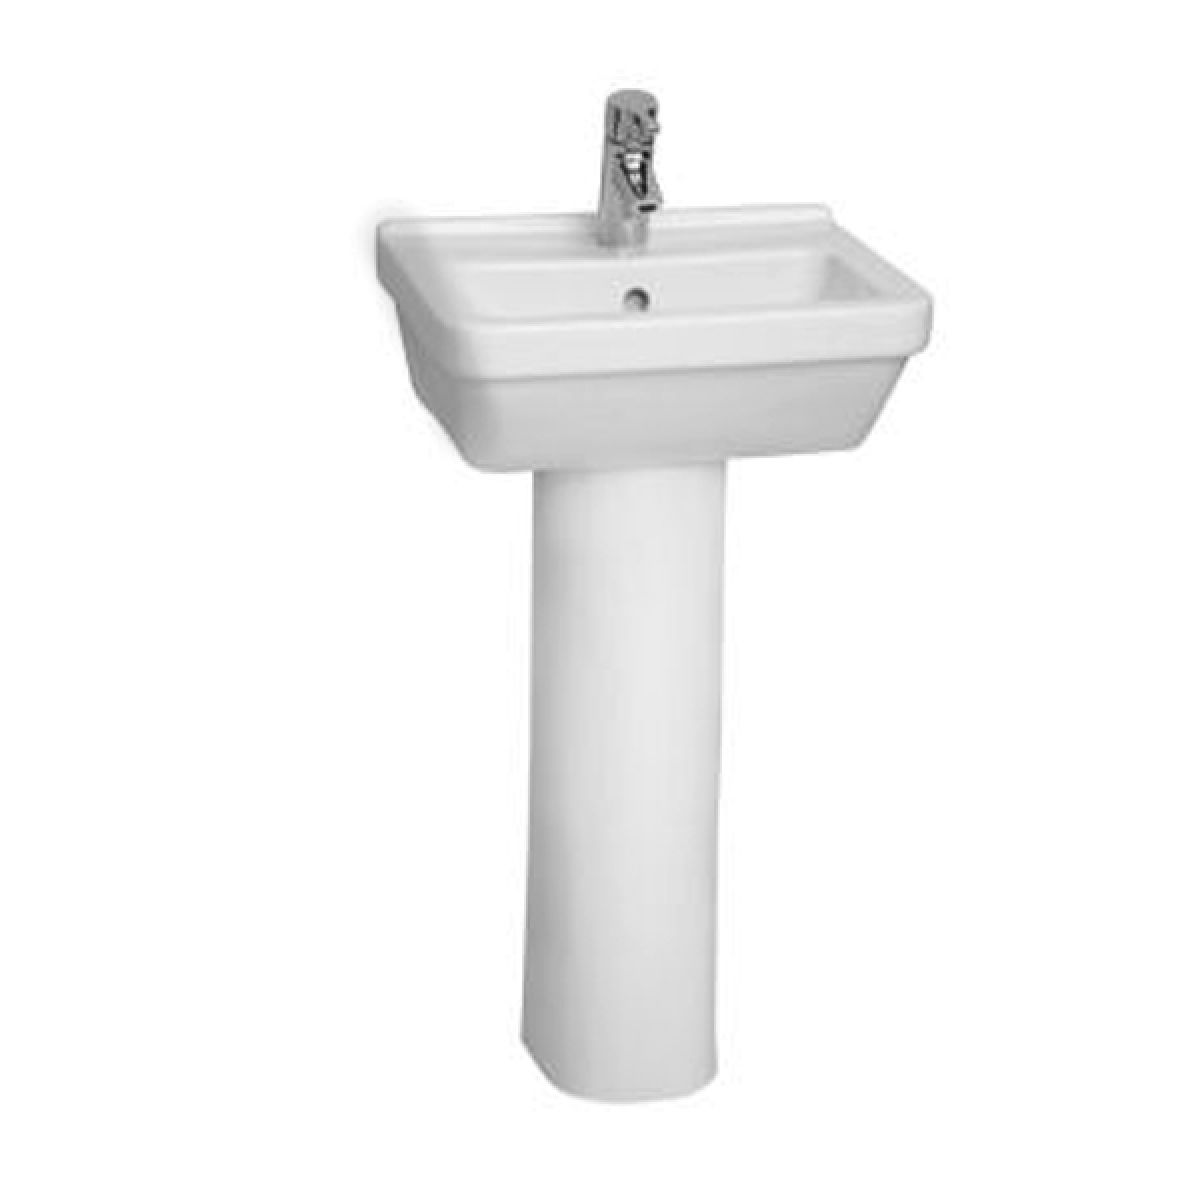 Vitra S50 1 Tap Hole Square Basin with Full Pedestal 450mm